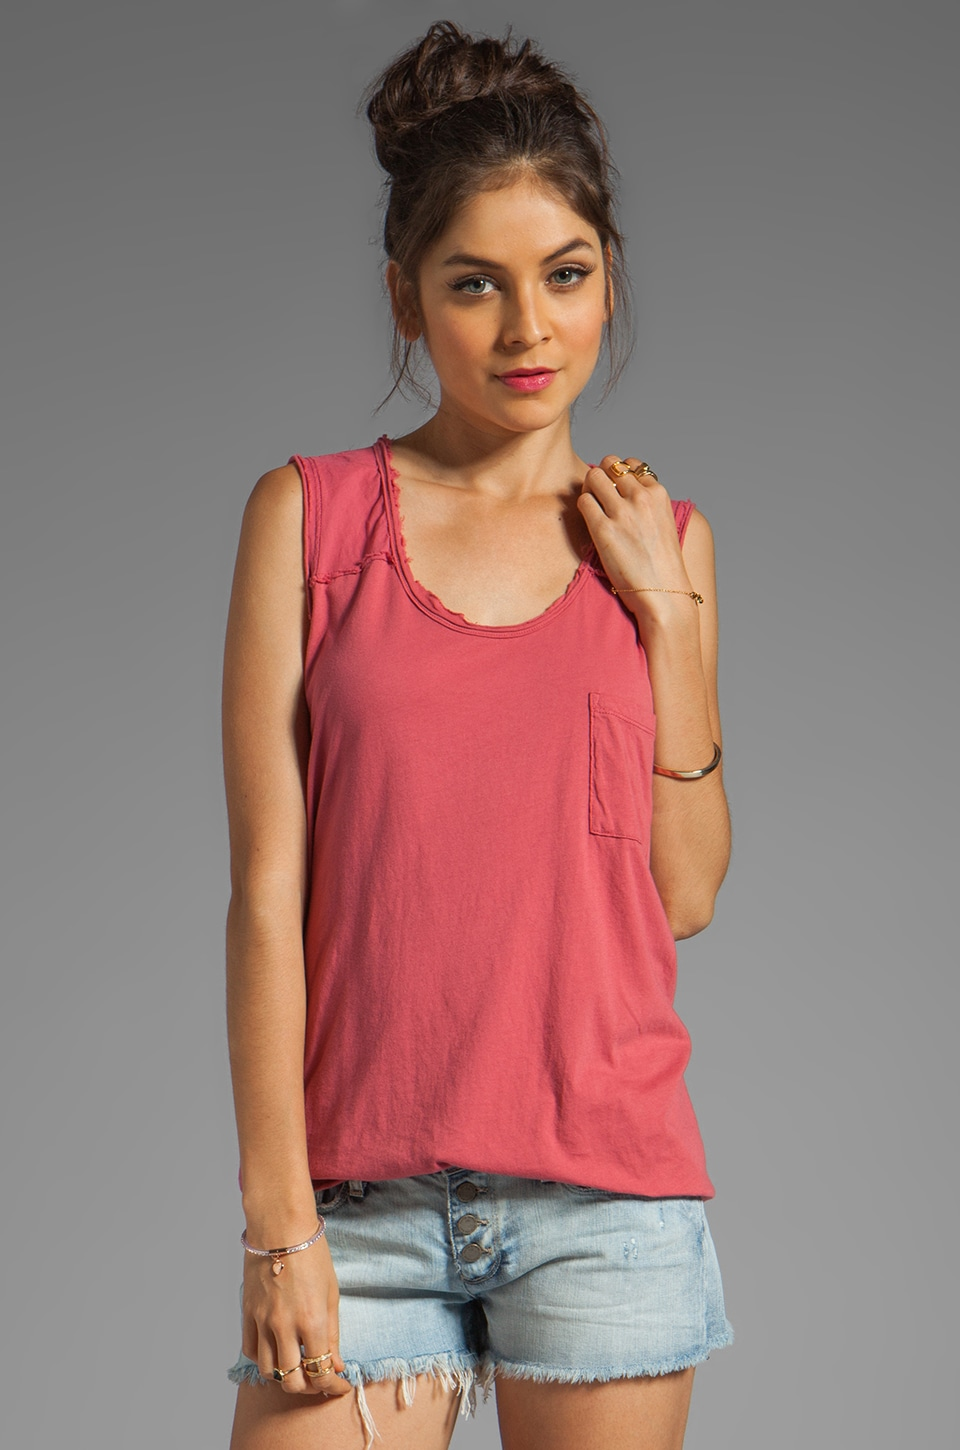 Free People Round the World Tee in Rouge